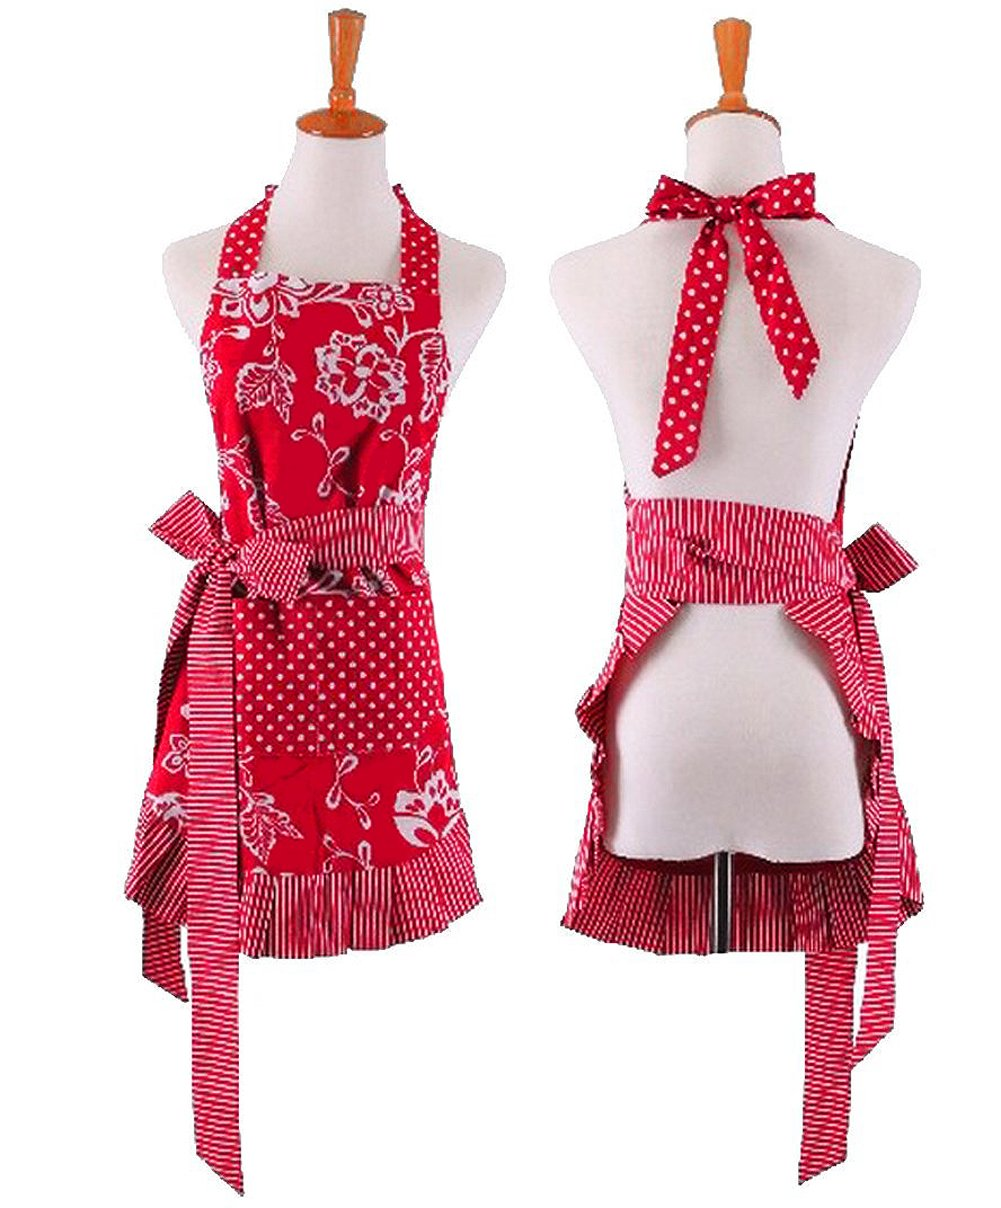 Cute Women Girls Red Aprons For Restaurant Kitchen